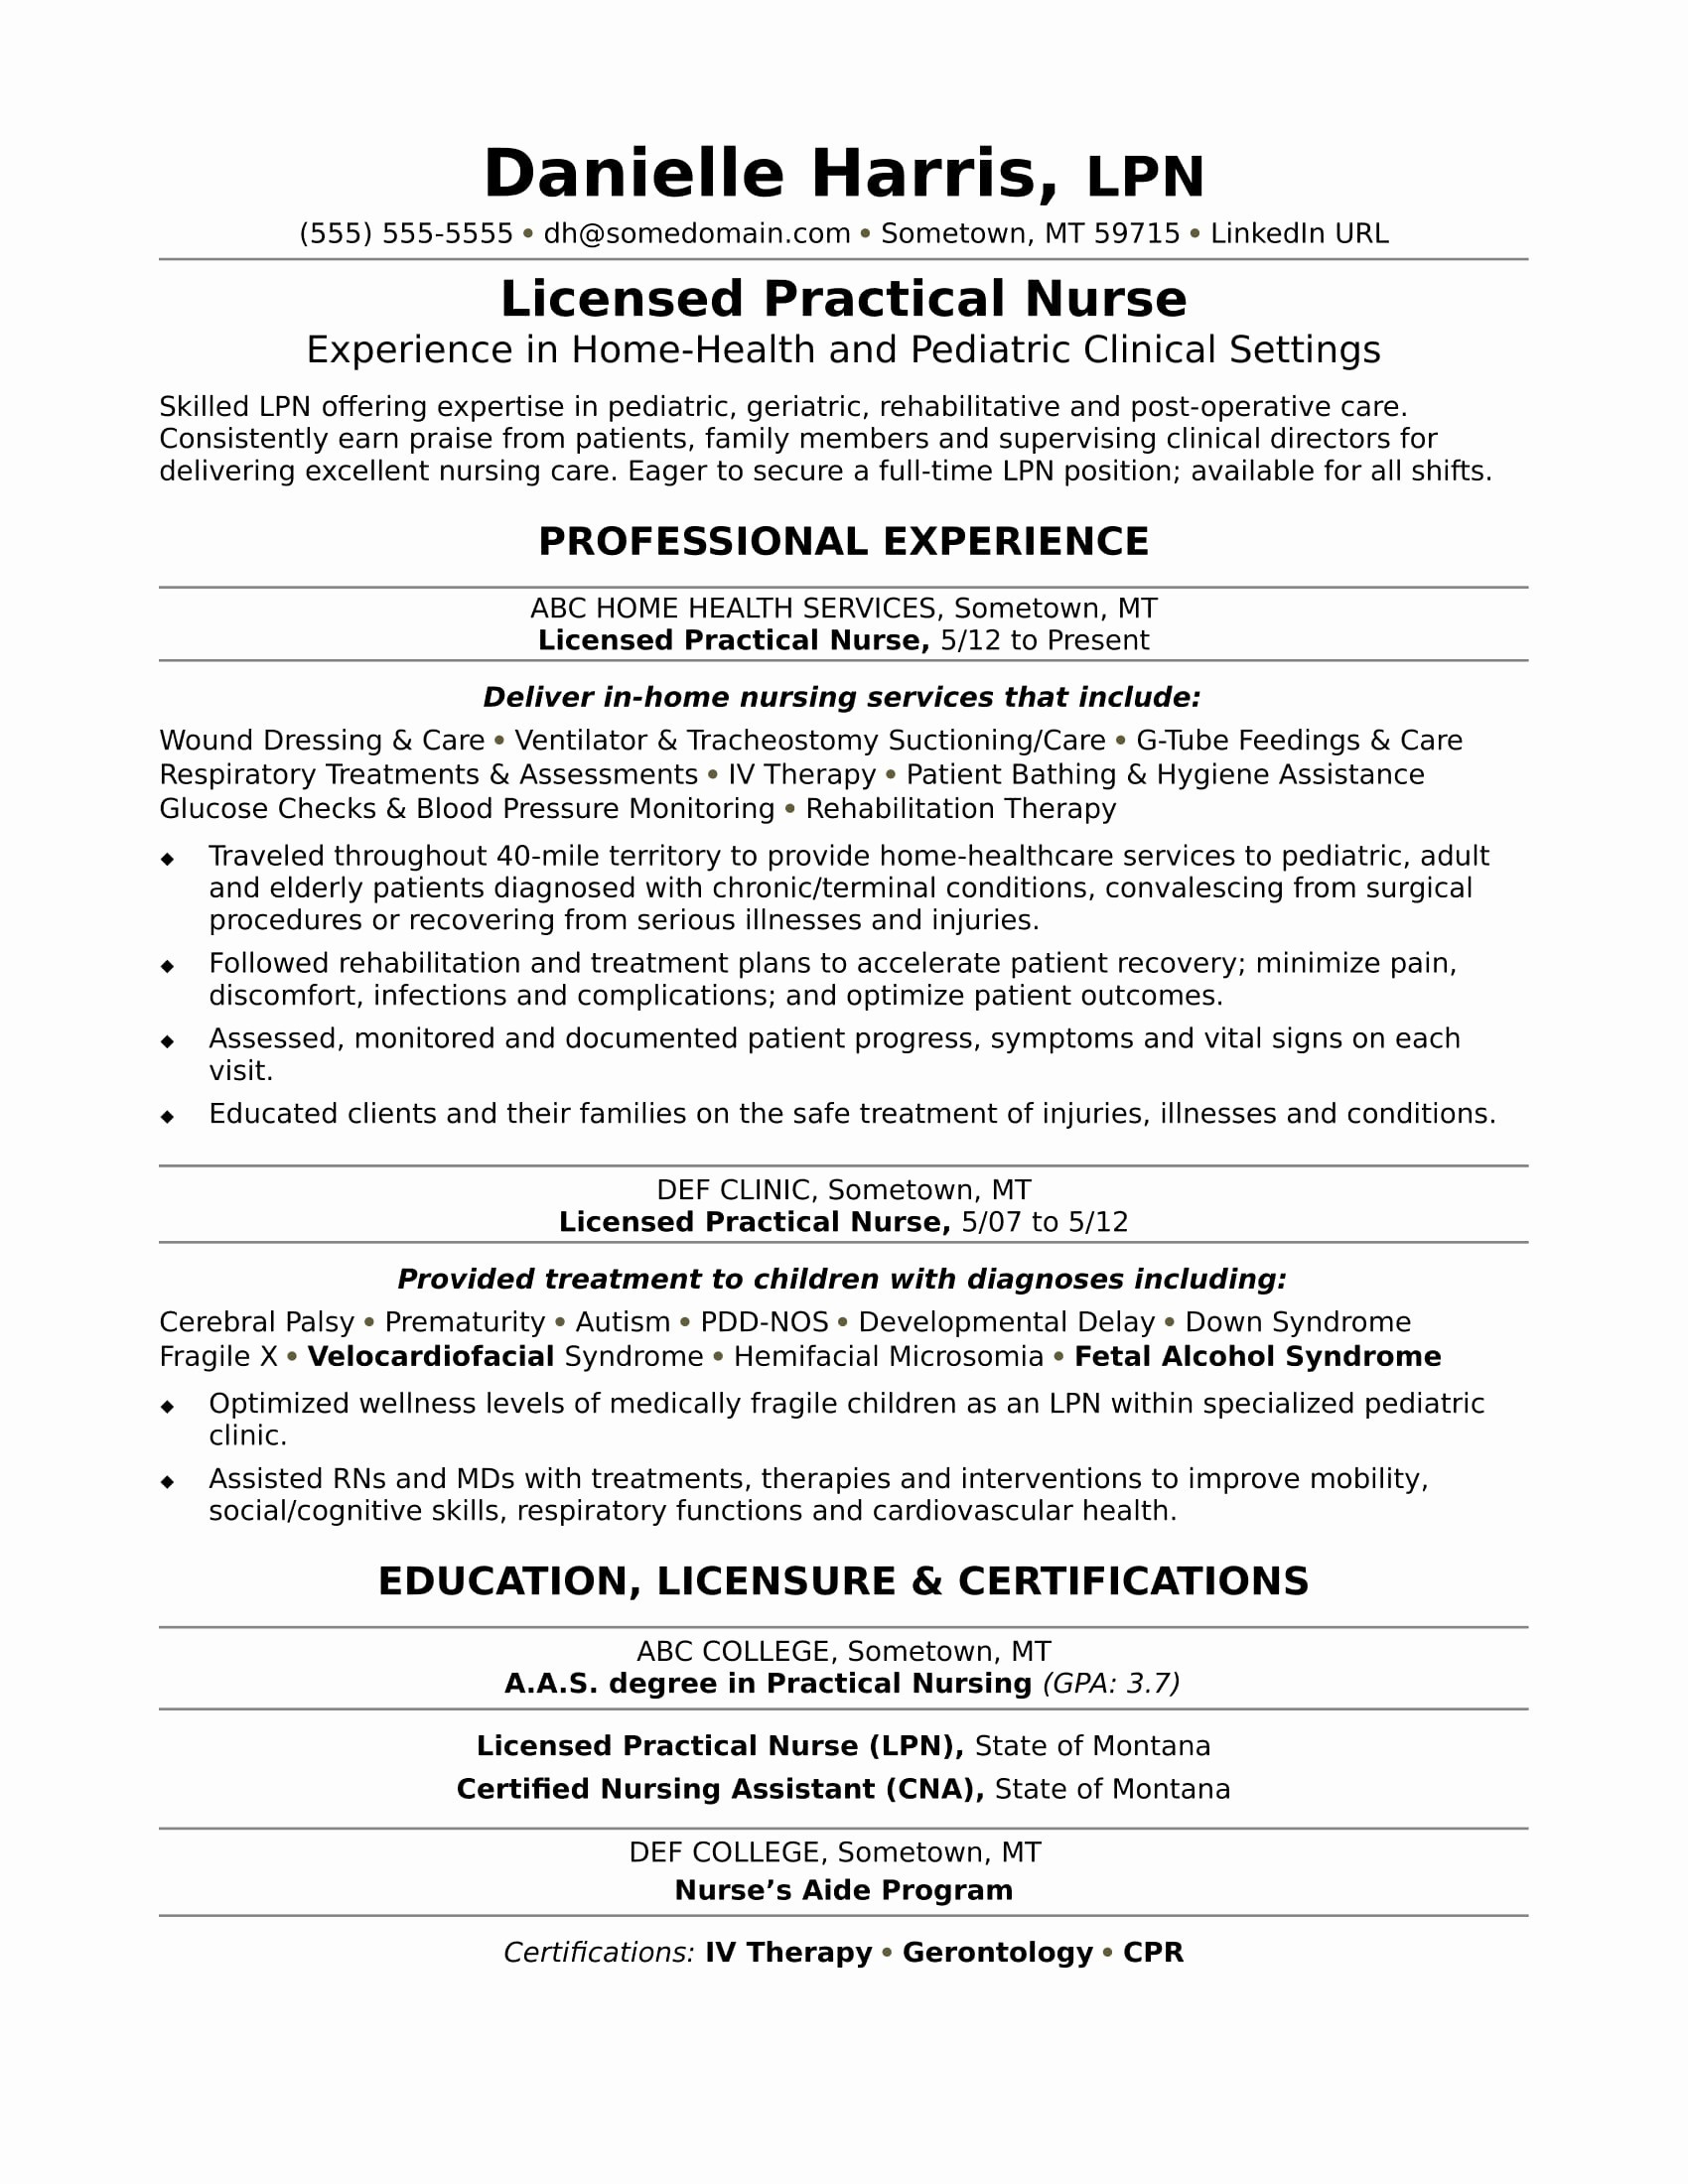 Resume for Nursing Student with No Experience - Entry Level Resume Sample No Work Experience Fresh Resume No